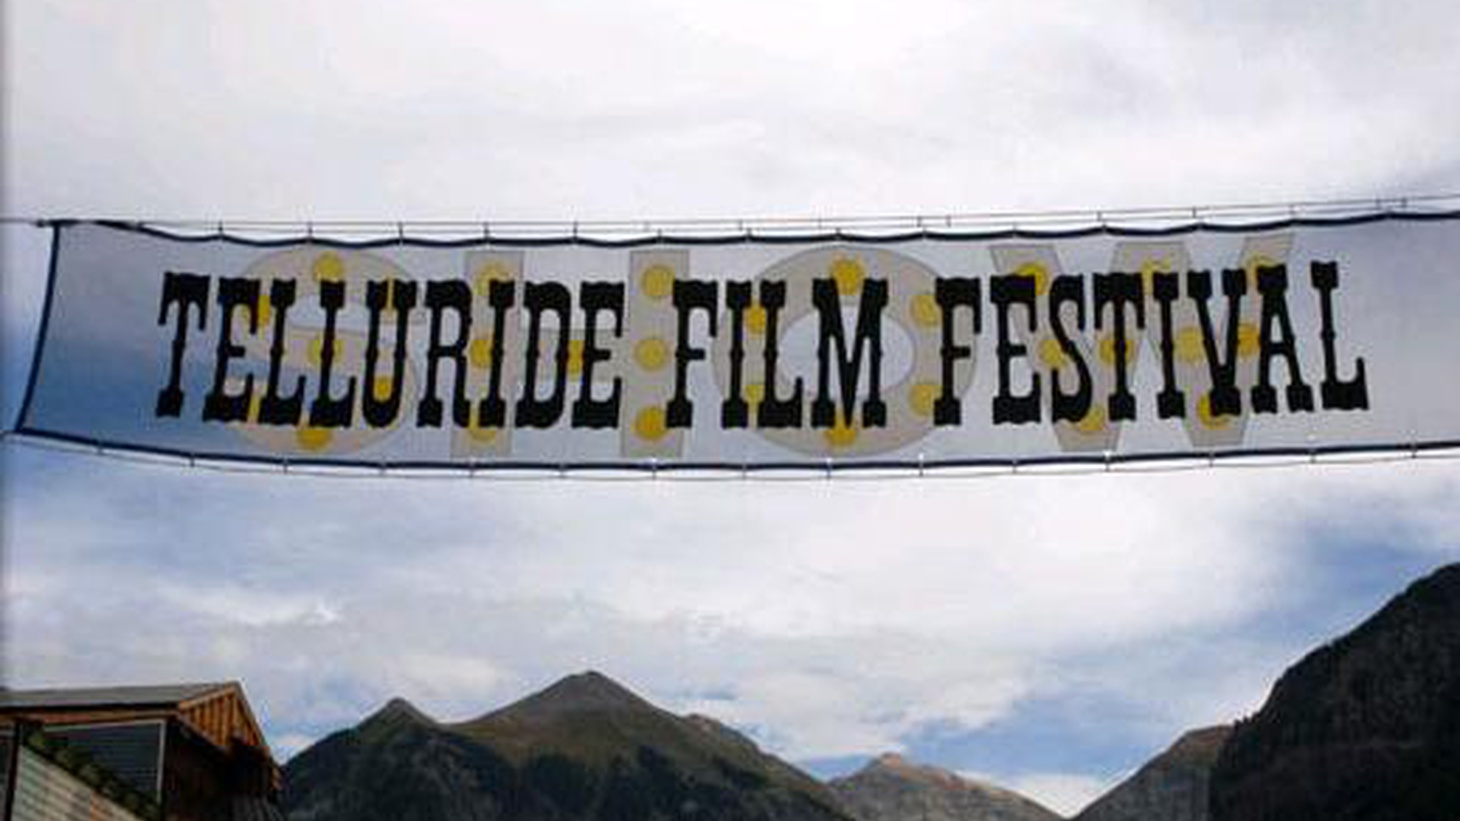 Every year I go to the Telluride Film Festival with the same fervent hope -- to put the summer's junk behind me and recharge my enthusiasm for the fall and winter. This year I got supercharged. It was a wonderful program, with all sorts of treats that will be showing up in the weeks and months to come...